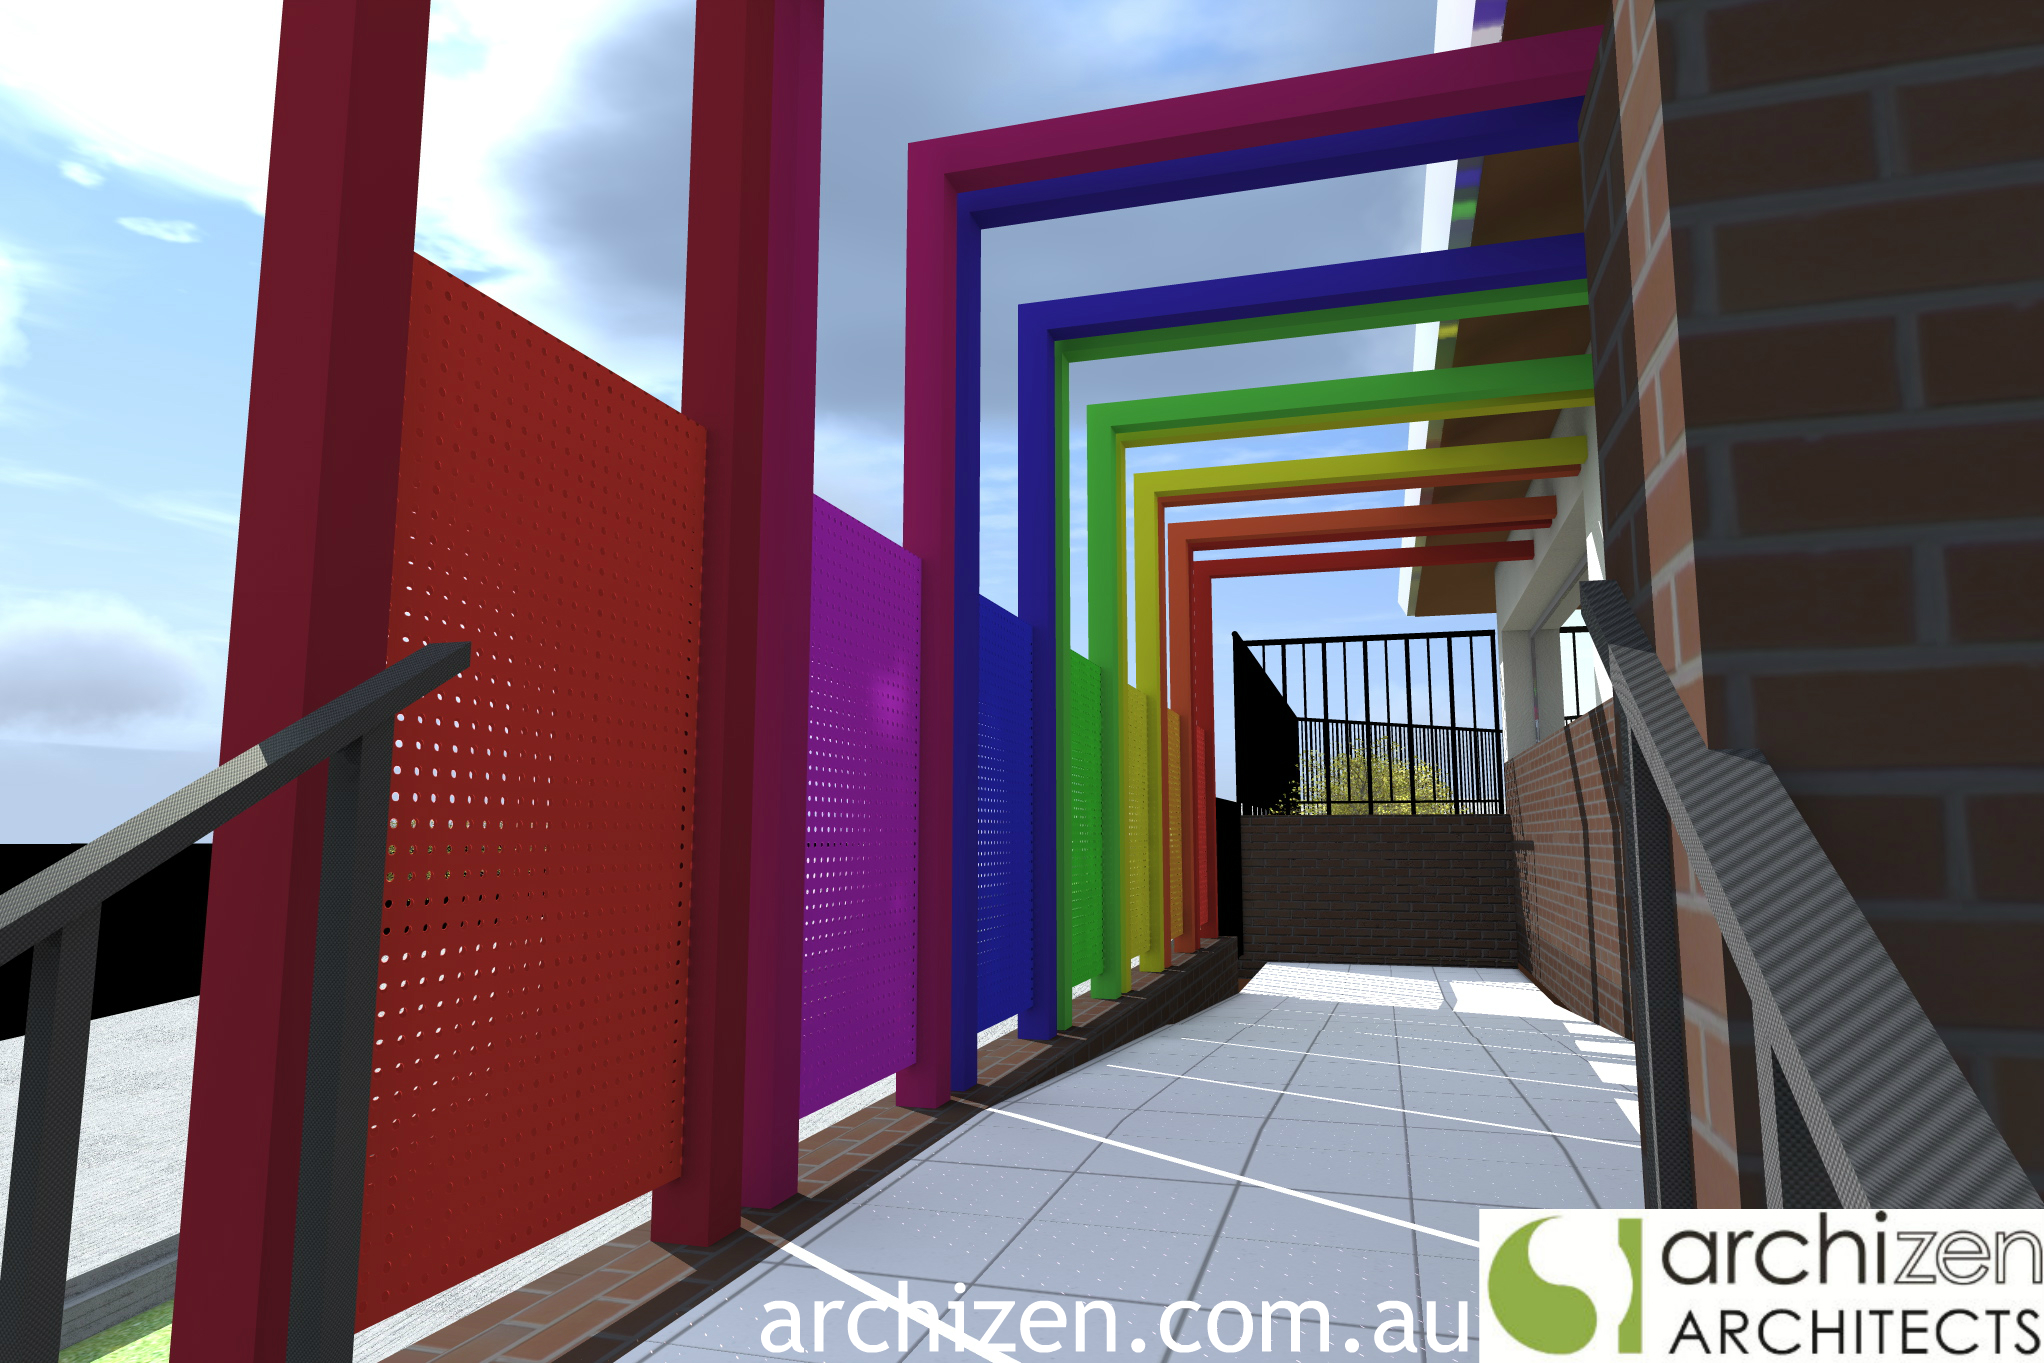 Mortdale Childcare Architectural Design Preschool Long Day Care Sydney Hurstville Council Architects Archizen Kindergarten 2